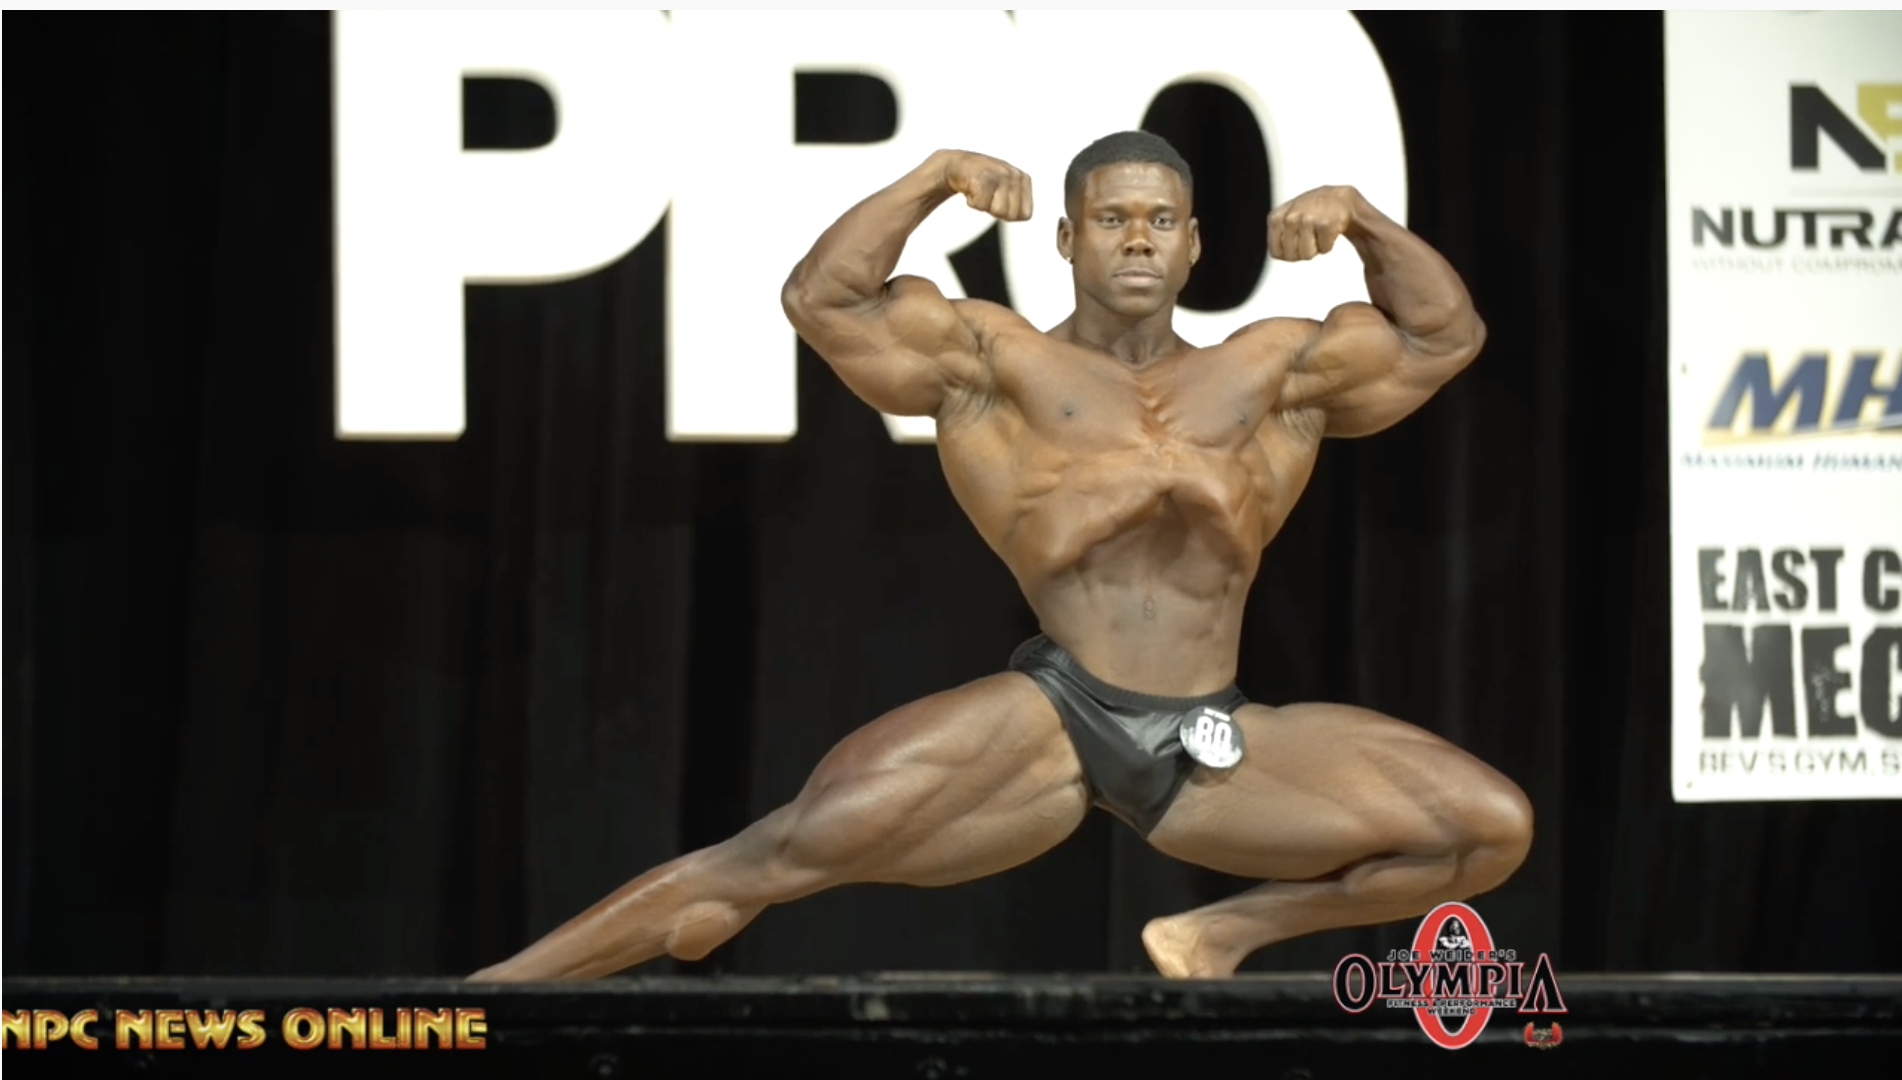 2019 IFBB NY Pro Men's Classic Physique Winner Keone Pearson